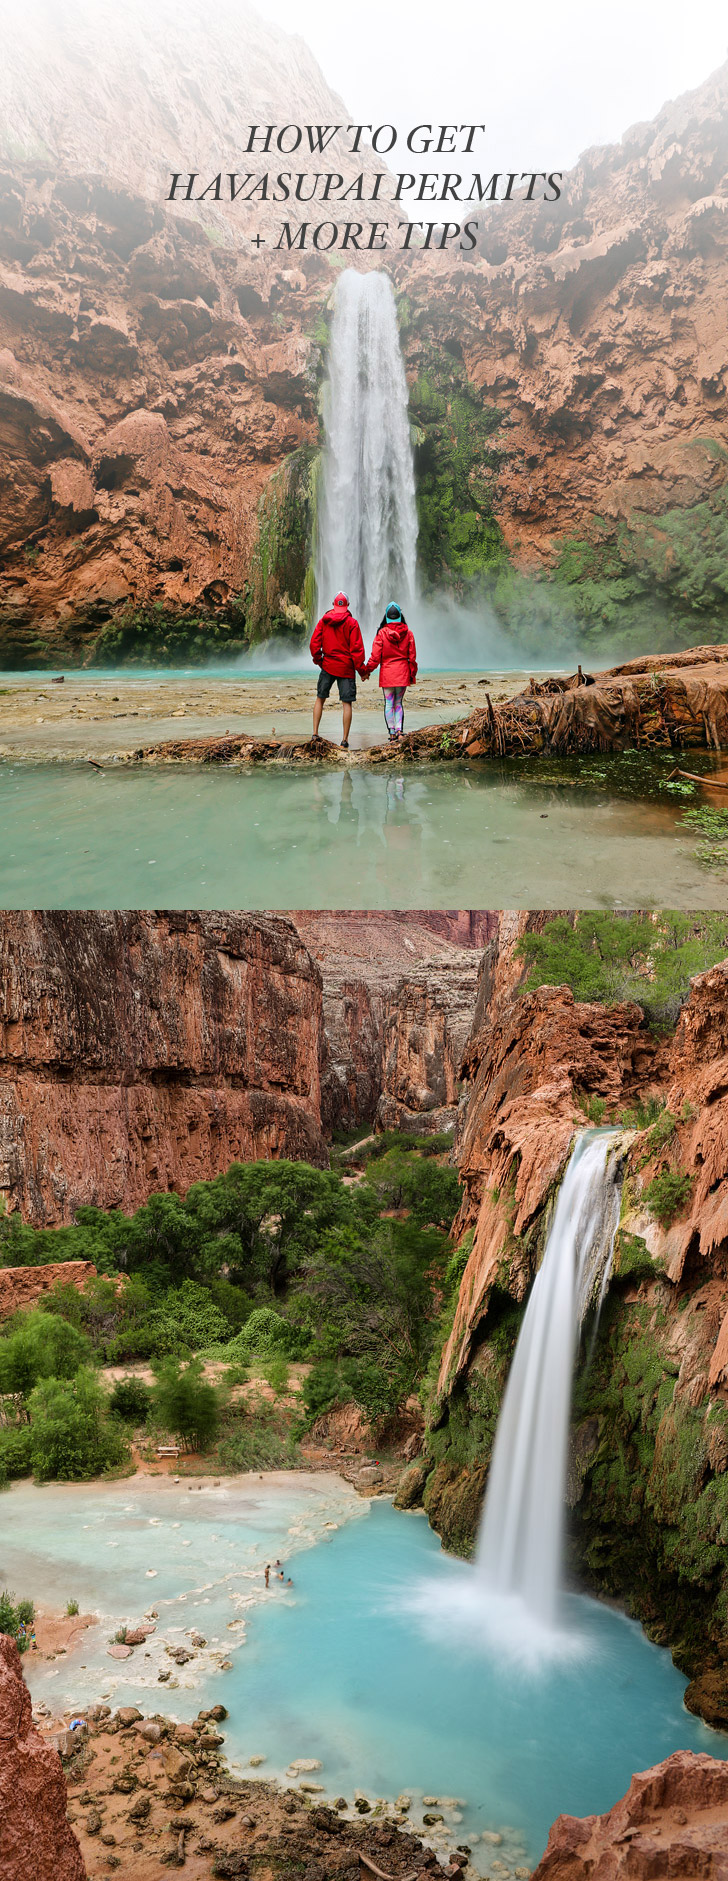 How To Get Havasupai Falls Reservations Permits More Tips